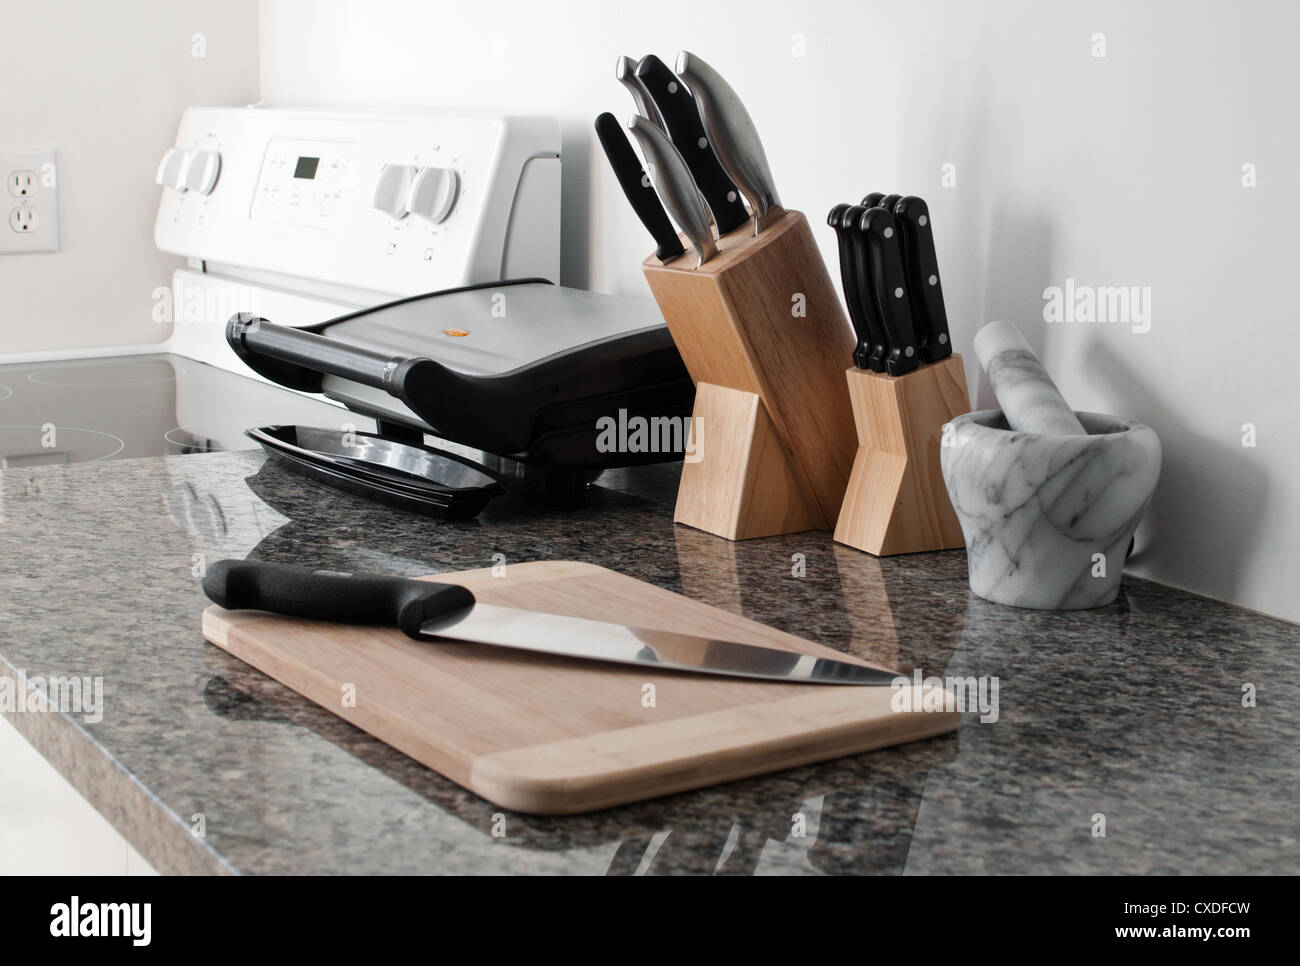 Gray granite counter with knives, mortar and pestle, panini grill and oven in a white kitchen - Stock Image